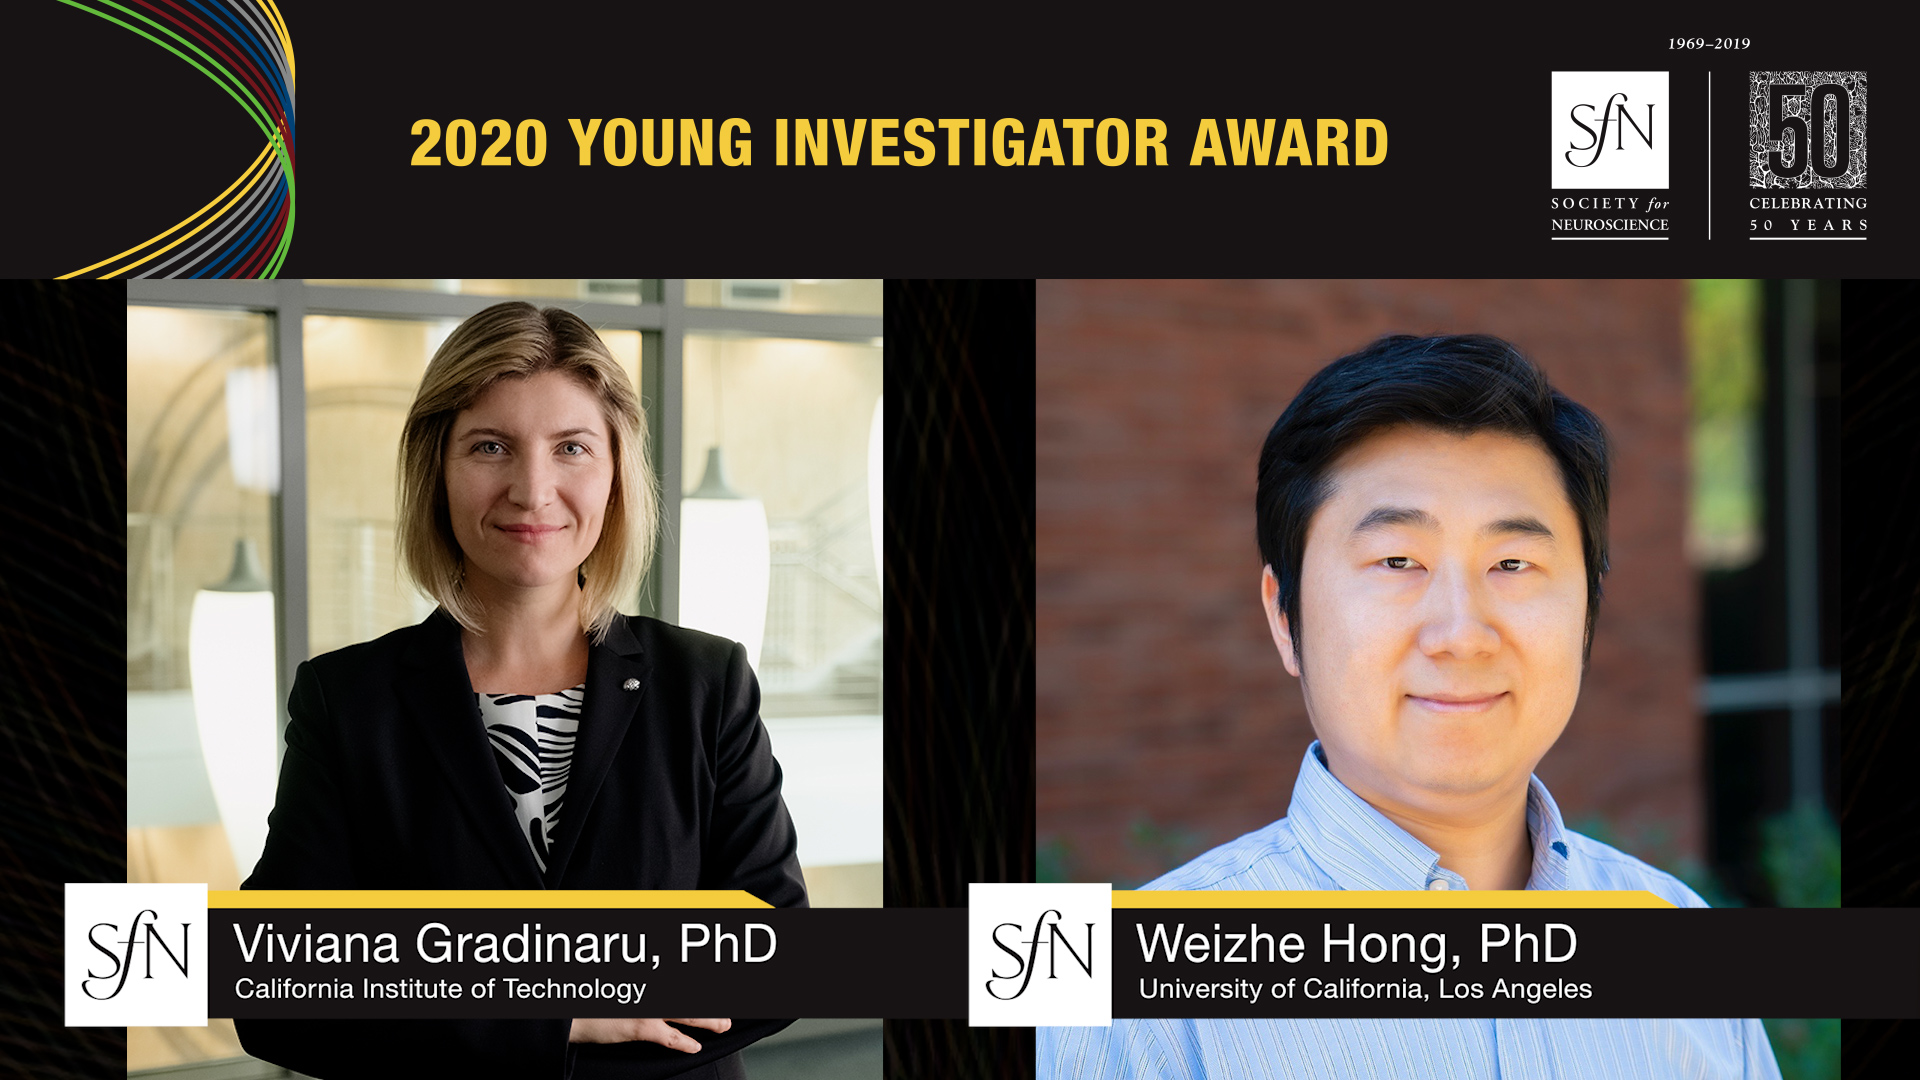 2020 Young Investigator Award winners graphic, images of Viviana Gradinaru, PhD California Institute of Technology and Weizhe Hong, PhD University of California, Los Angeles